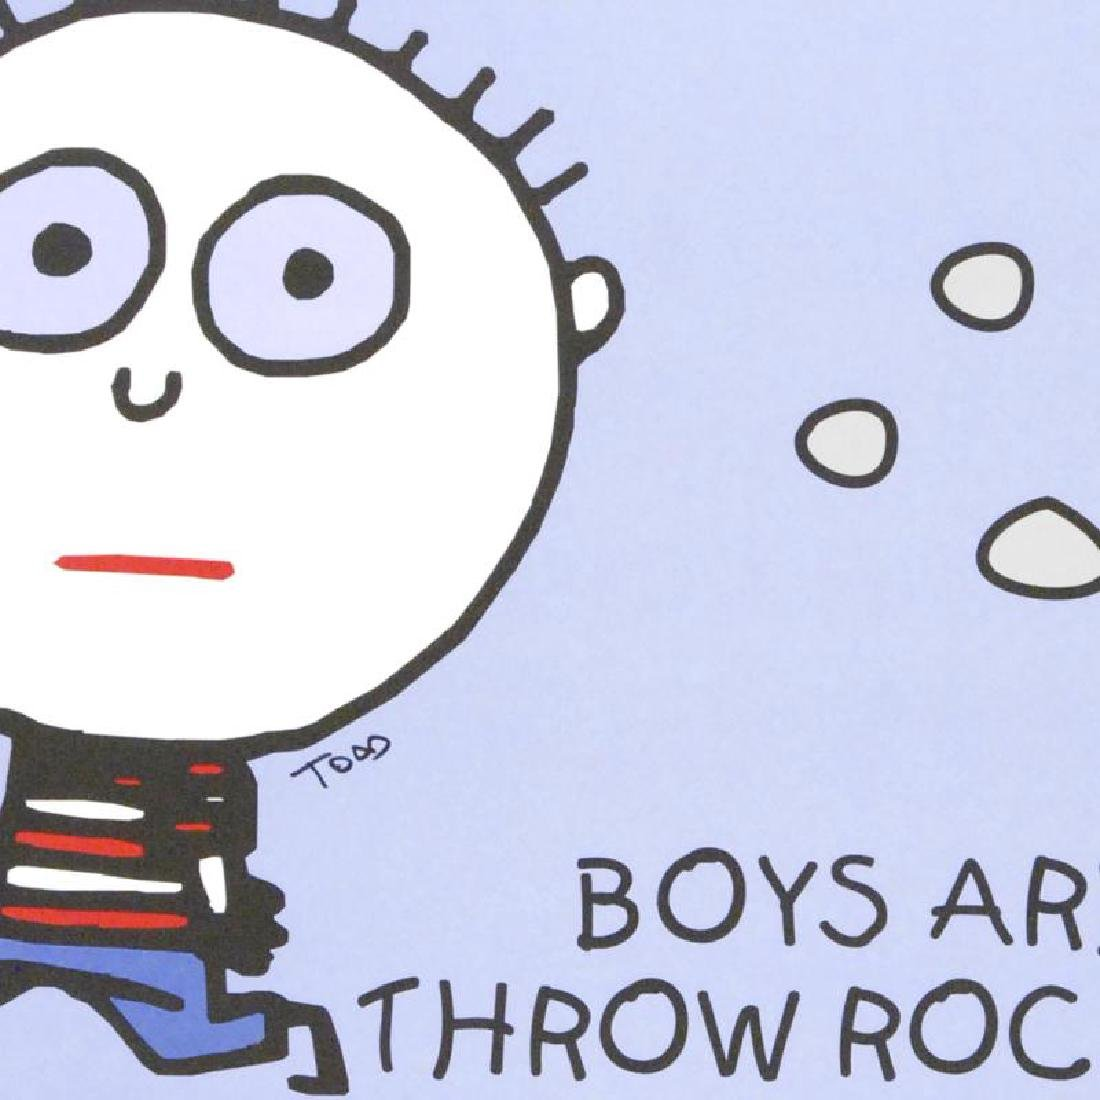 """Boys Are Stupid, Throw Rocks At Them!"" FINE ART Litho - 2"